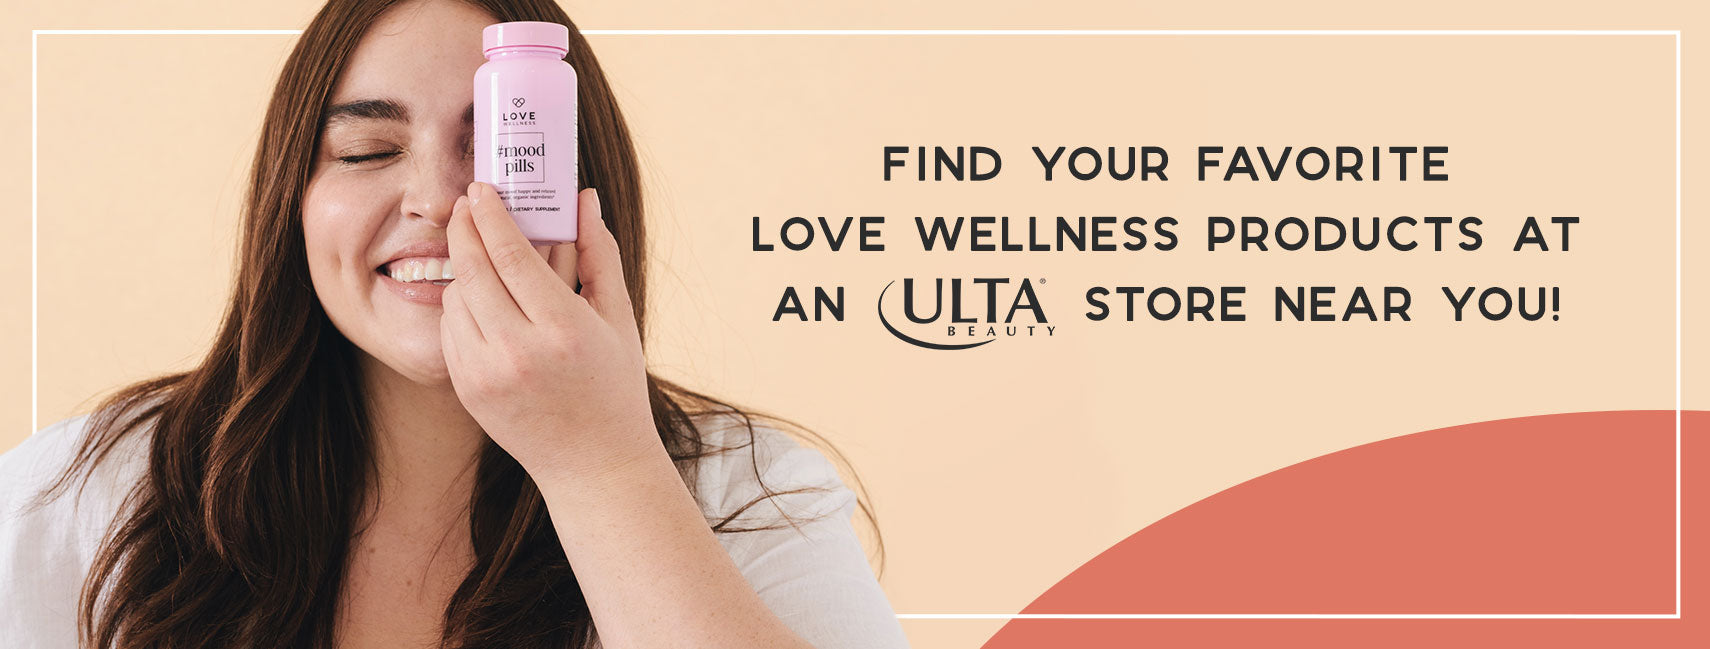 Find Your Favorite Love Wellness Products at a Store Near You!